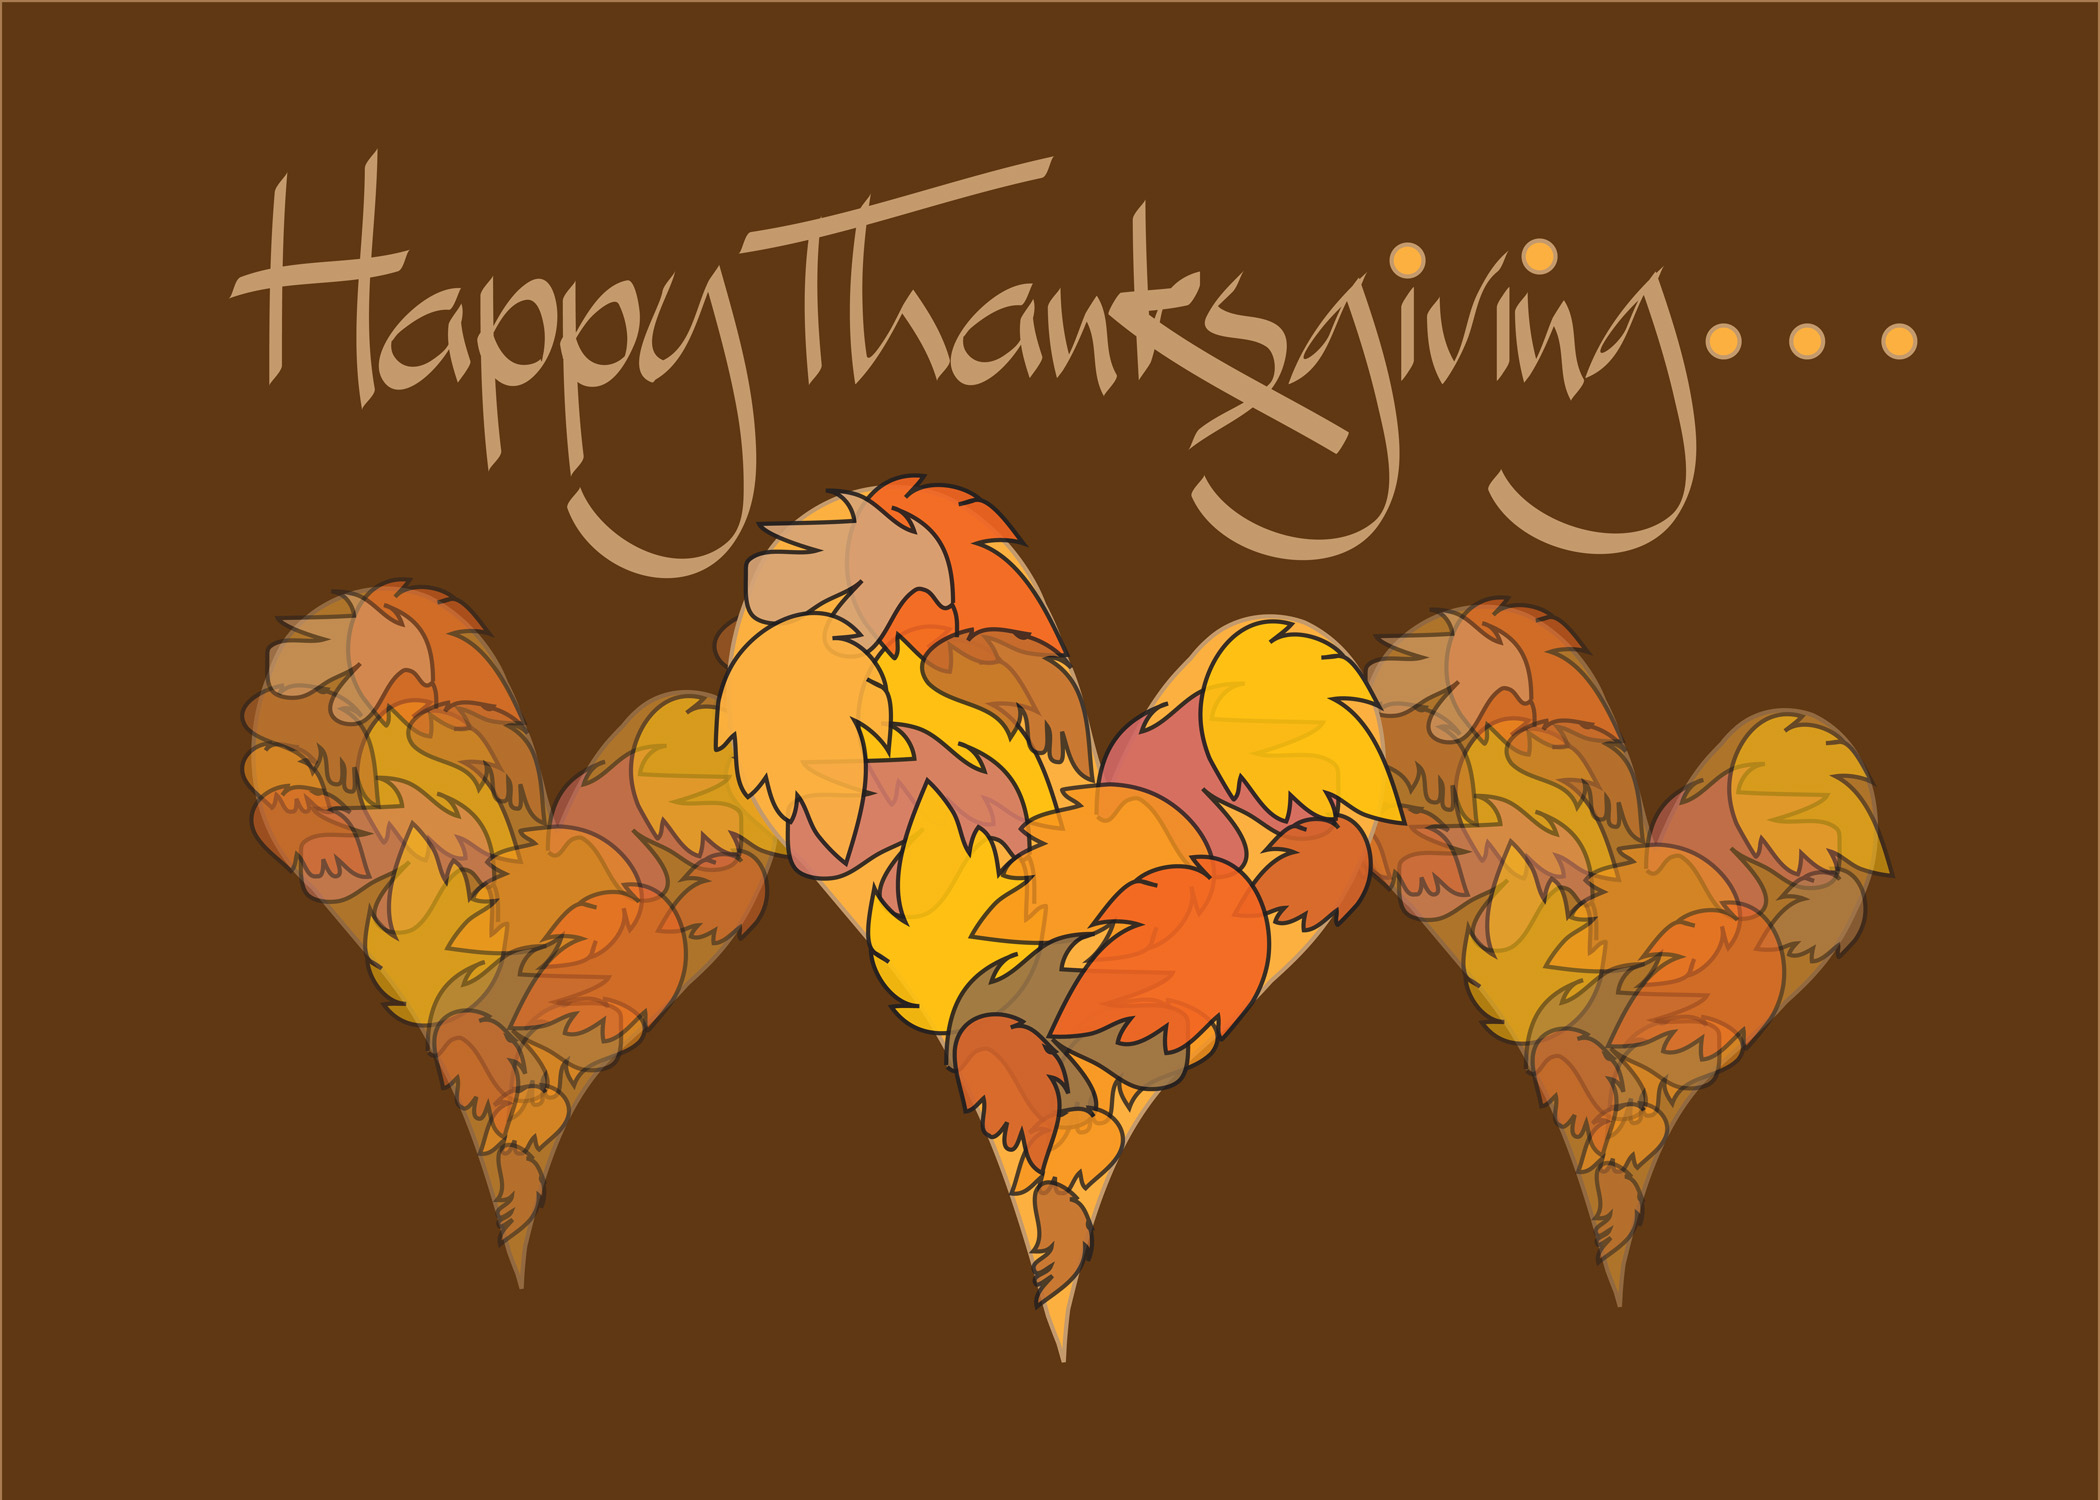 Happy Thanksgiving >> Talking Shop Happy Thanksgiving Symmetry Lithographers